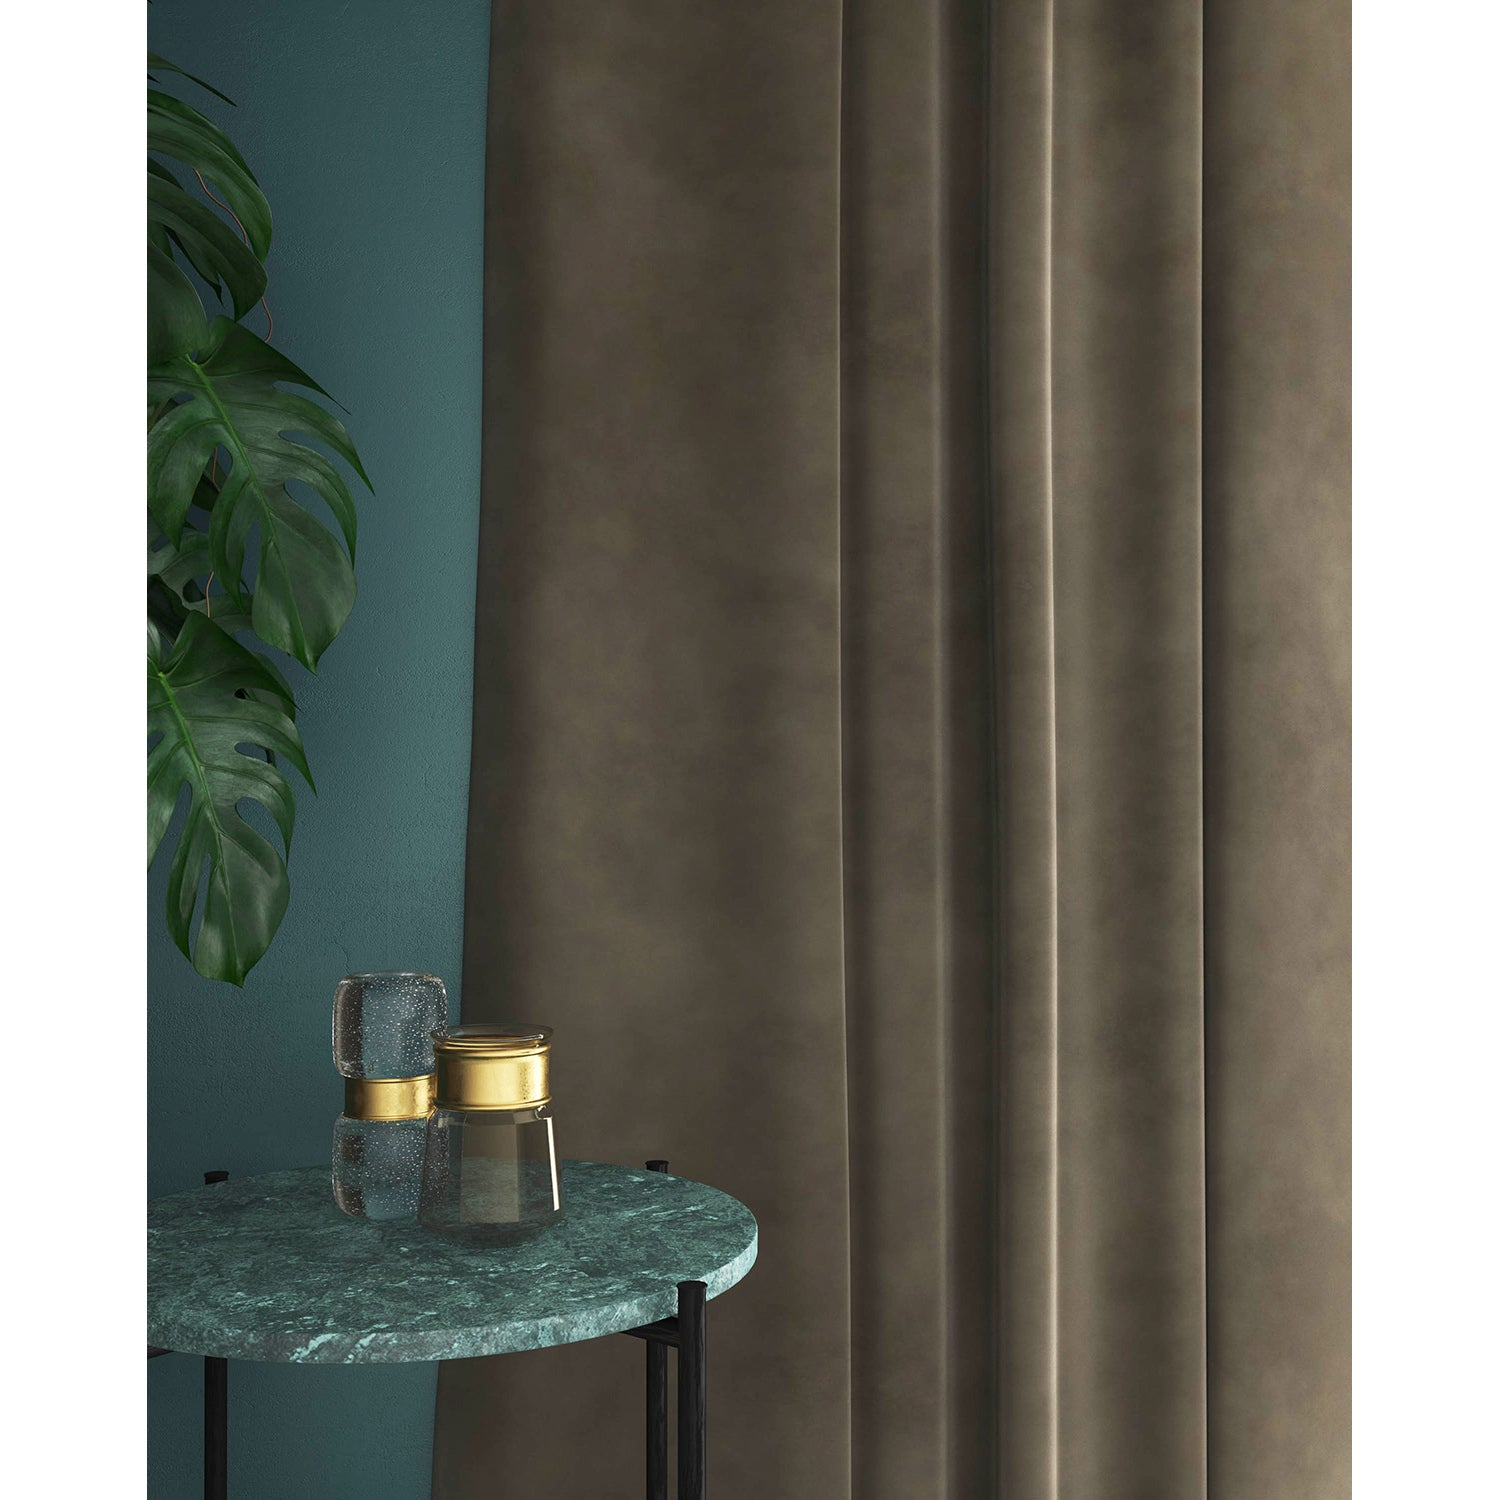 Taupe velvet curtains with a stain resistant finish